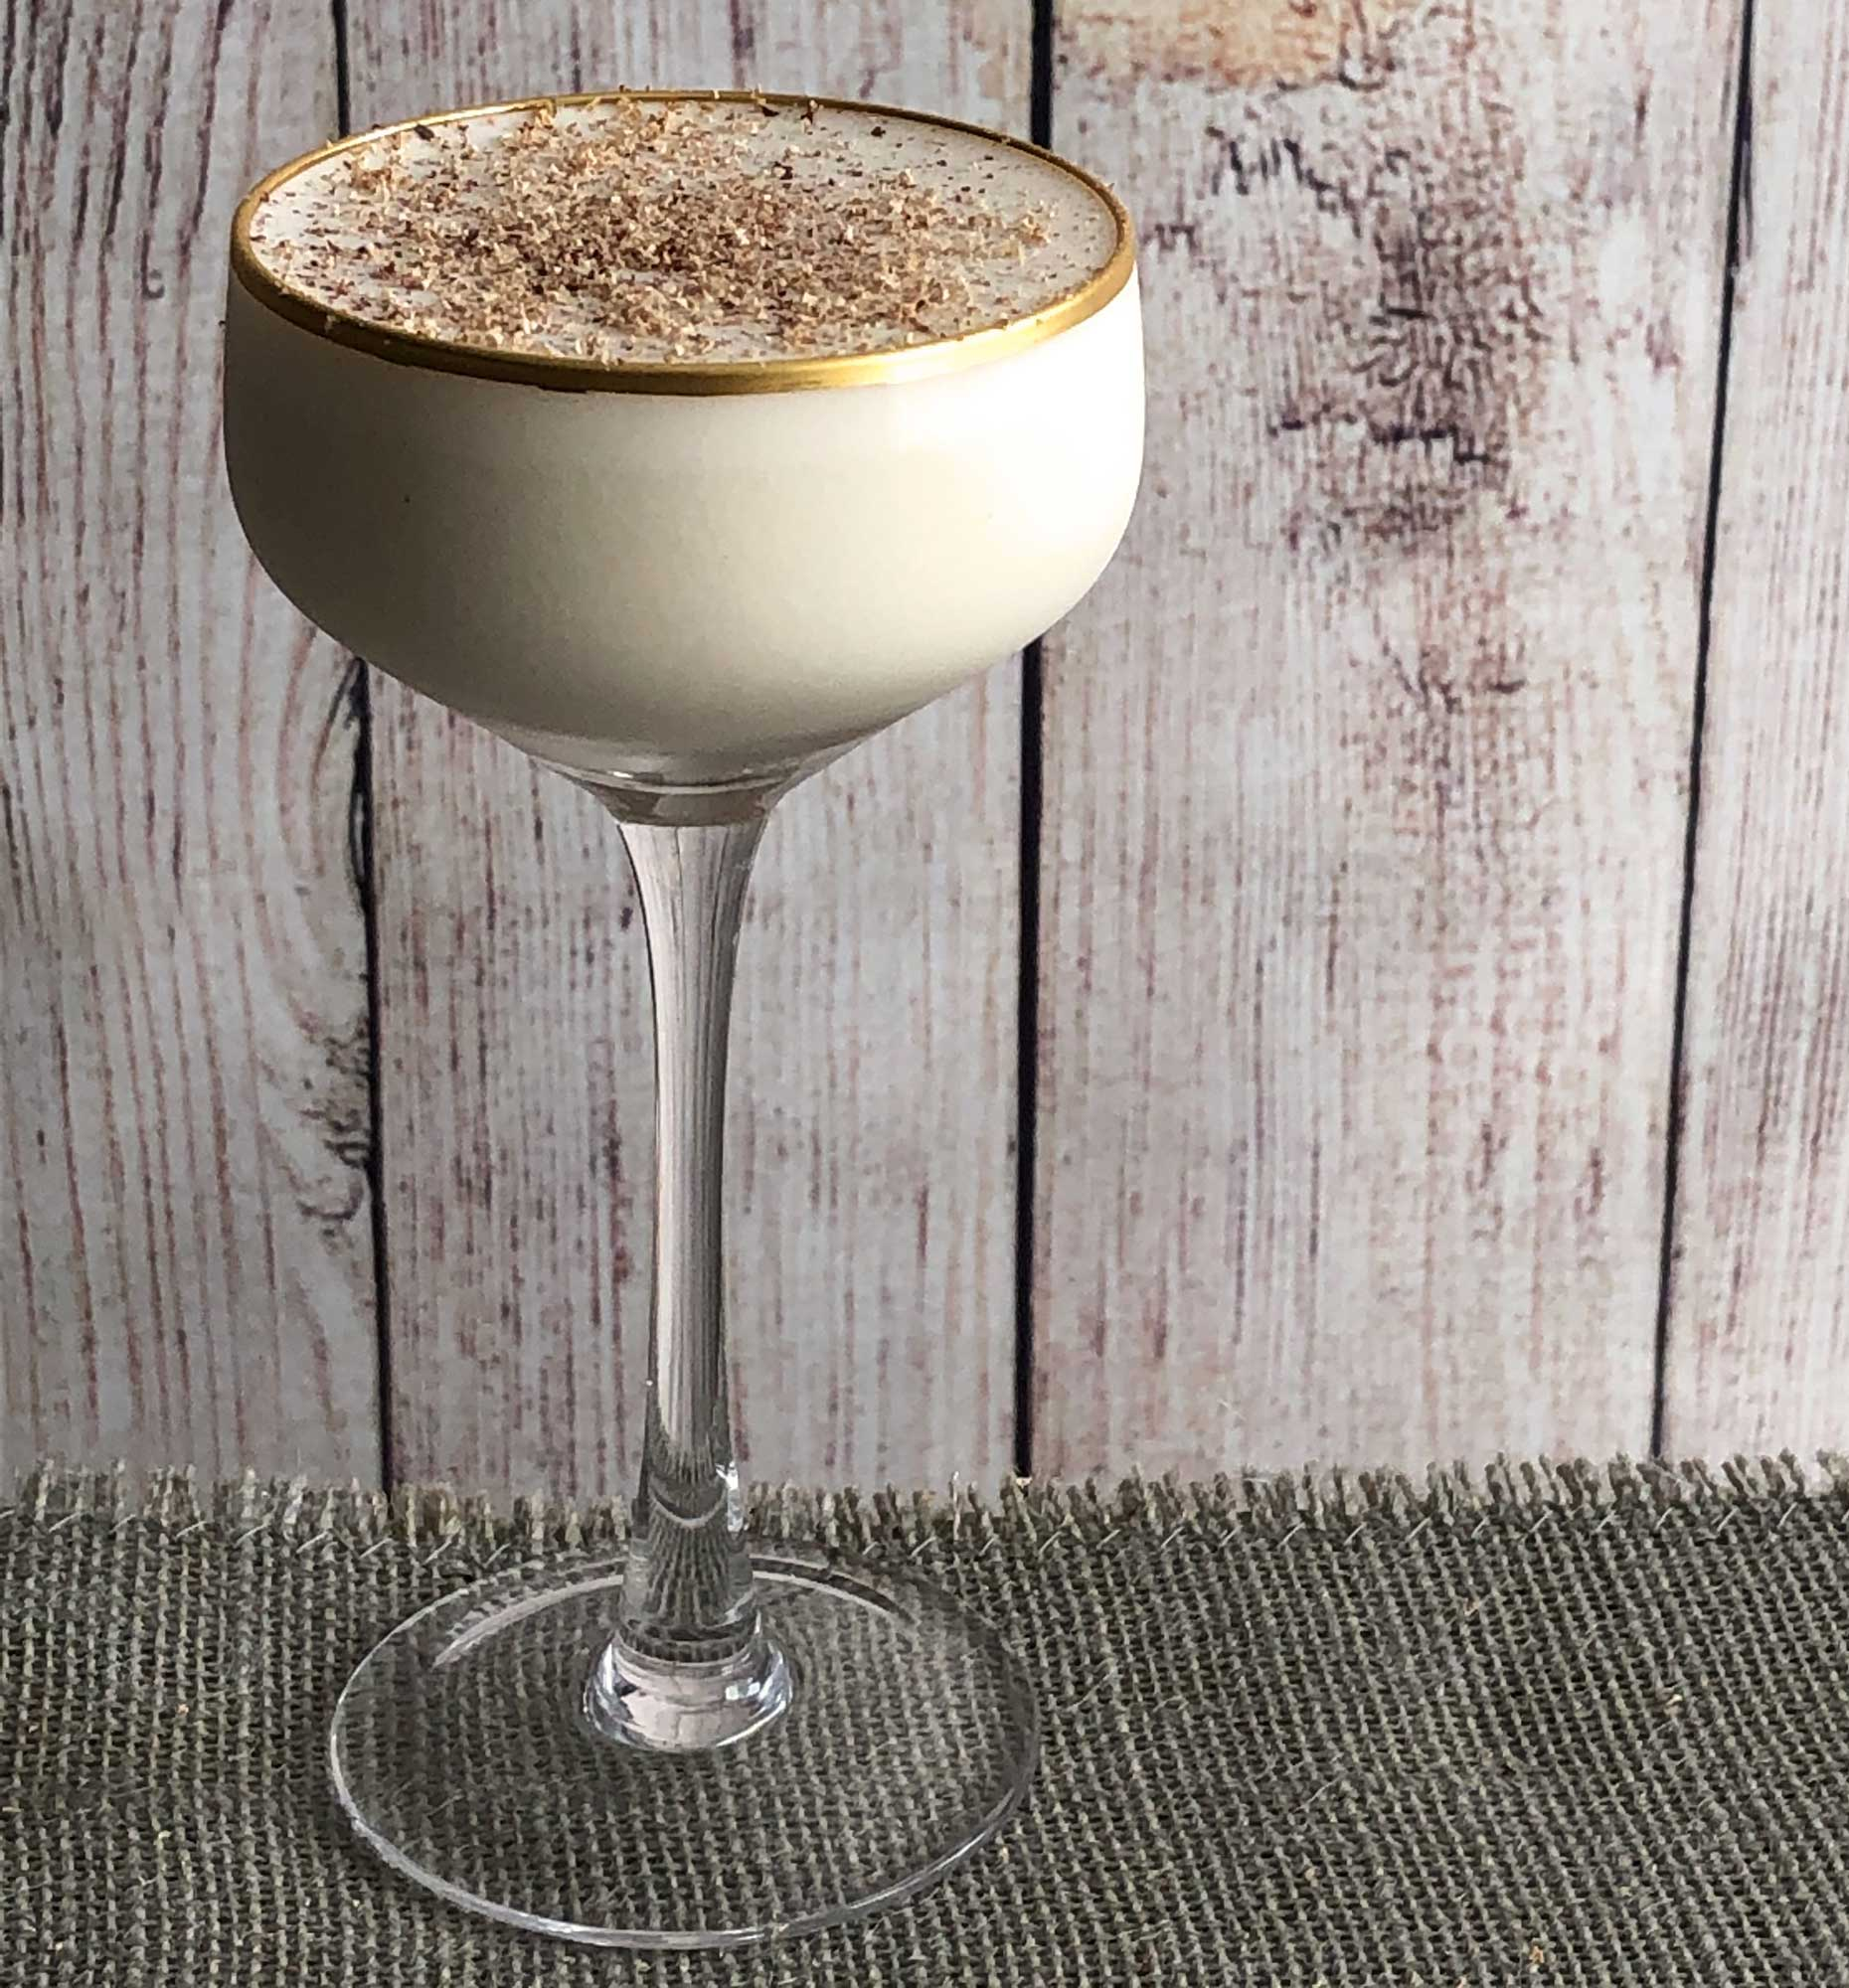 """An example of the Barbary Coast, the mixed drink (cocktail), variation of a drink from the Savoy Cocktail Book, featuring Tresmontaine """"tabacal"""" Rancio, Hayman's London Dry Gin, crème de cacao (white), and cream; photo by Lee Edwards"""